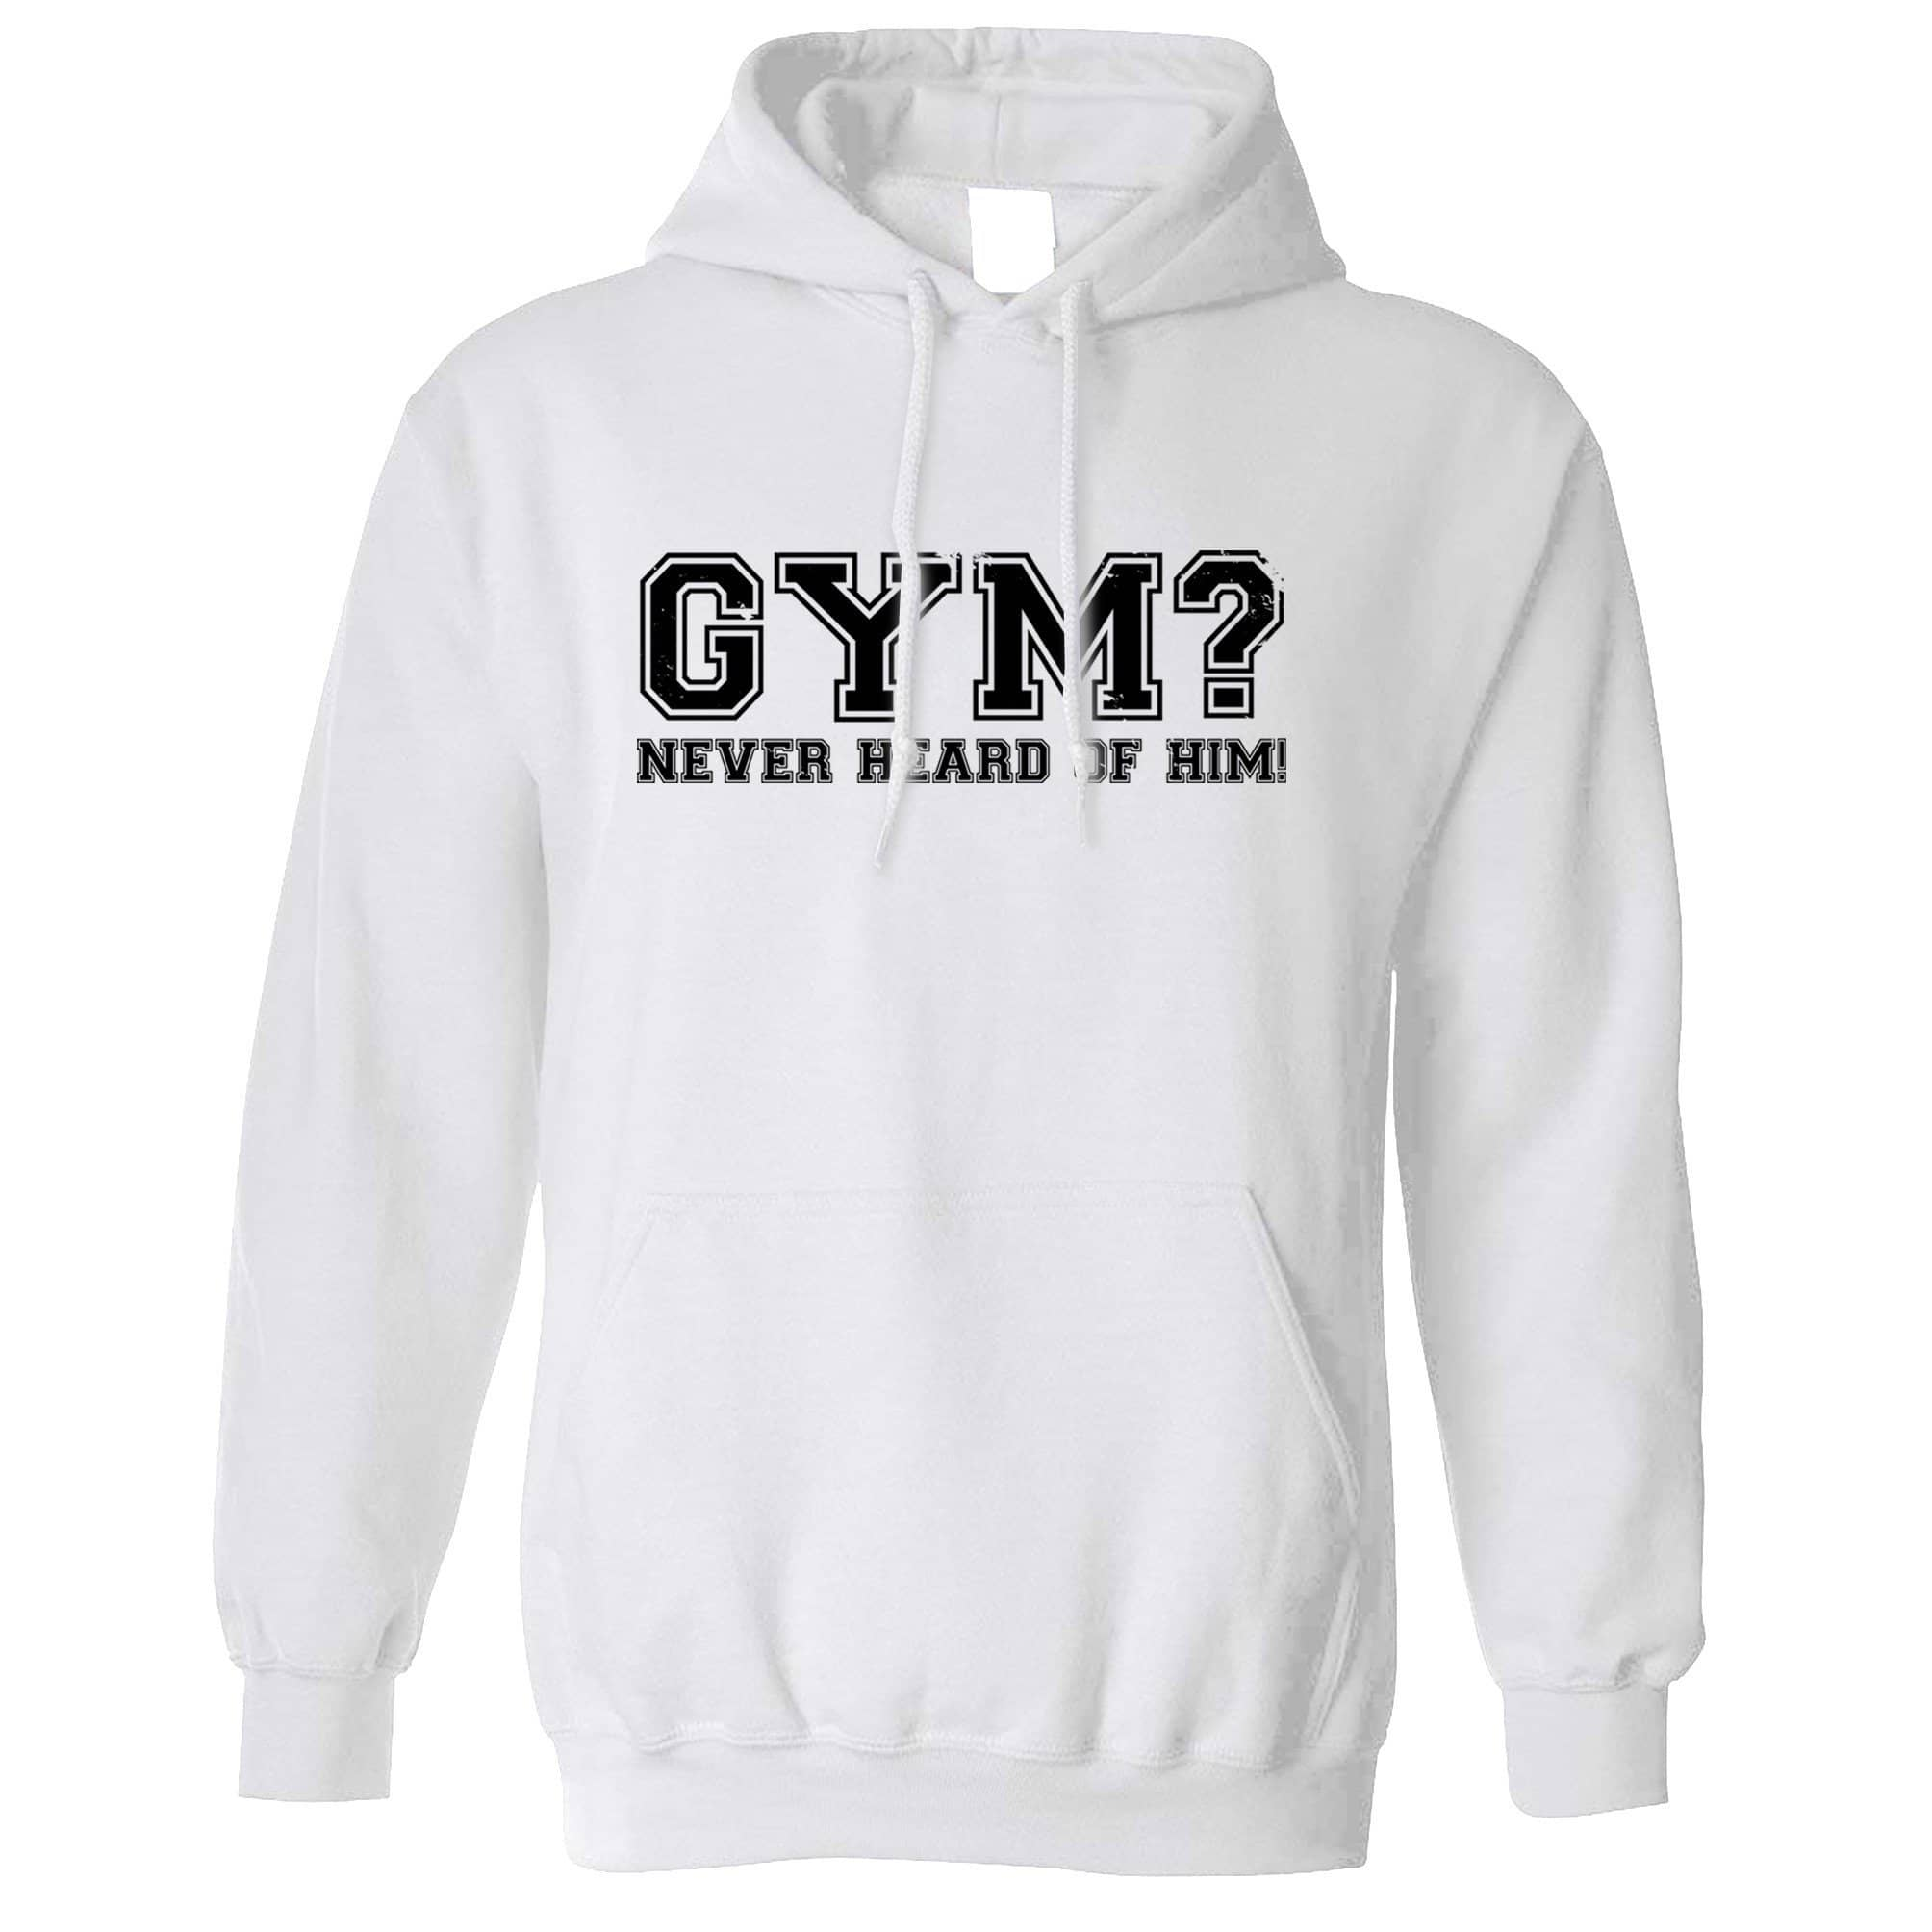 Novelty Lazy Hoodie Gym? Never Heard Of Him Slogan Hooded Jumper